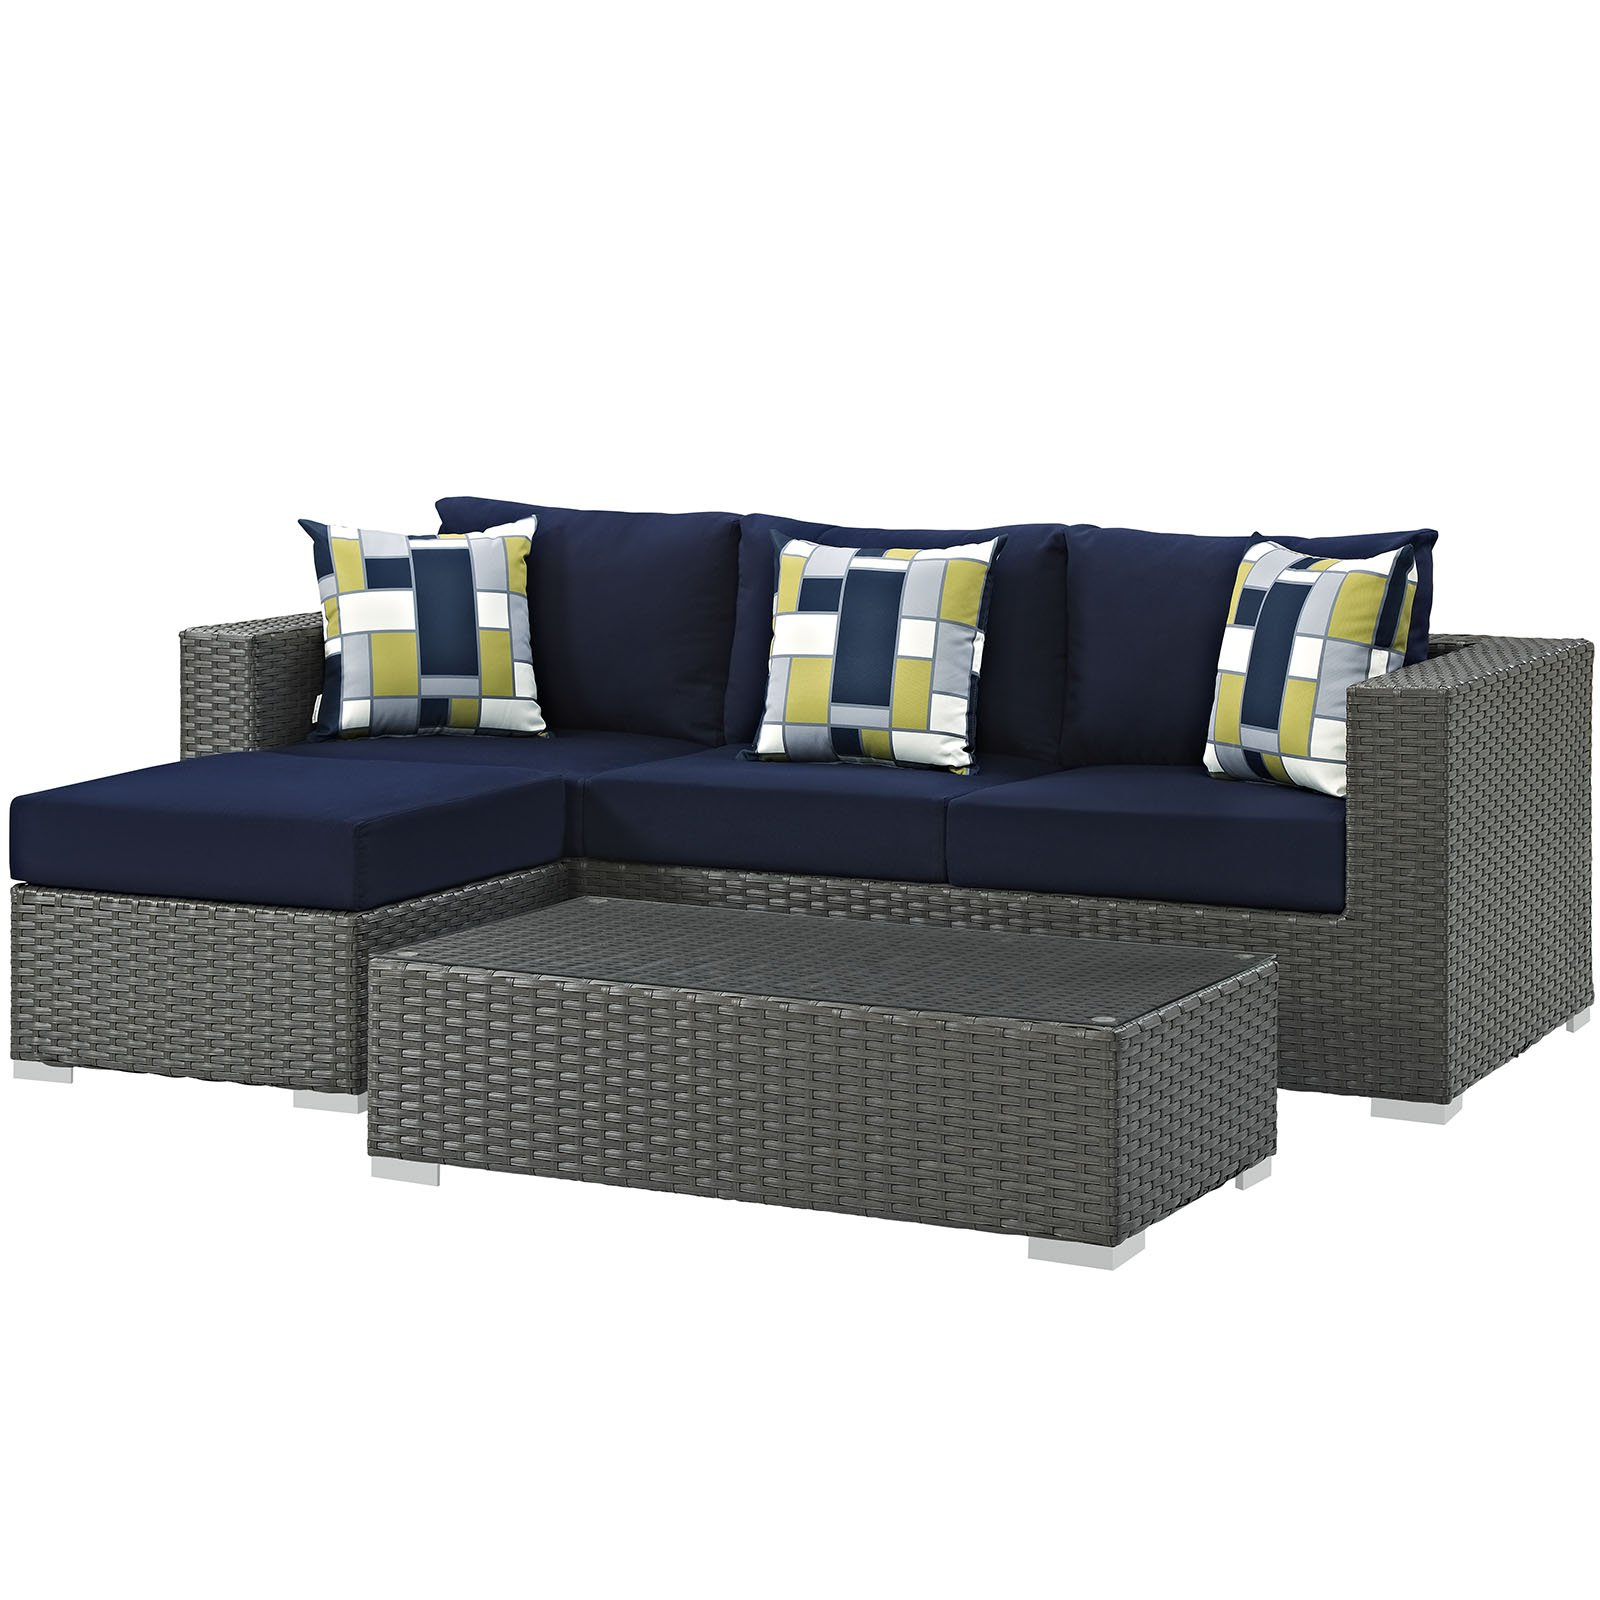 Fashionable Modway Furniture Modern Sojourn 3 Piece Outdoor Patio With Regard To Castelli Loveseats With Cushions (View 9 of 20)